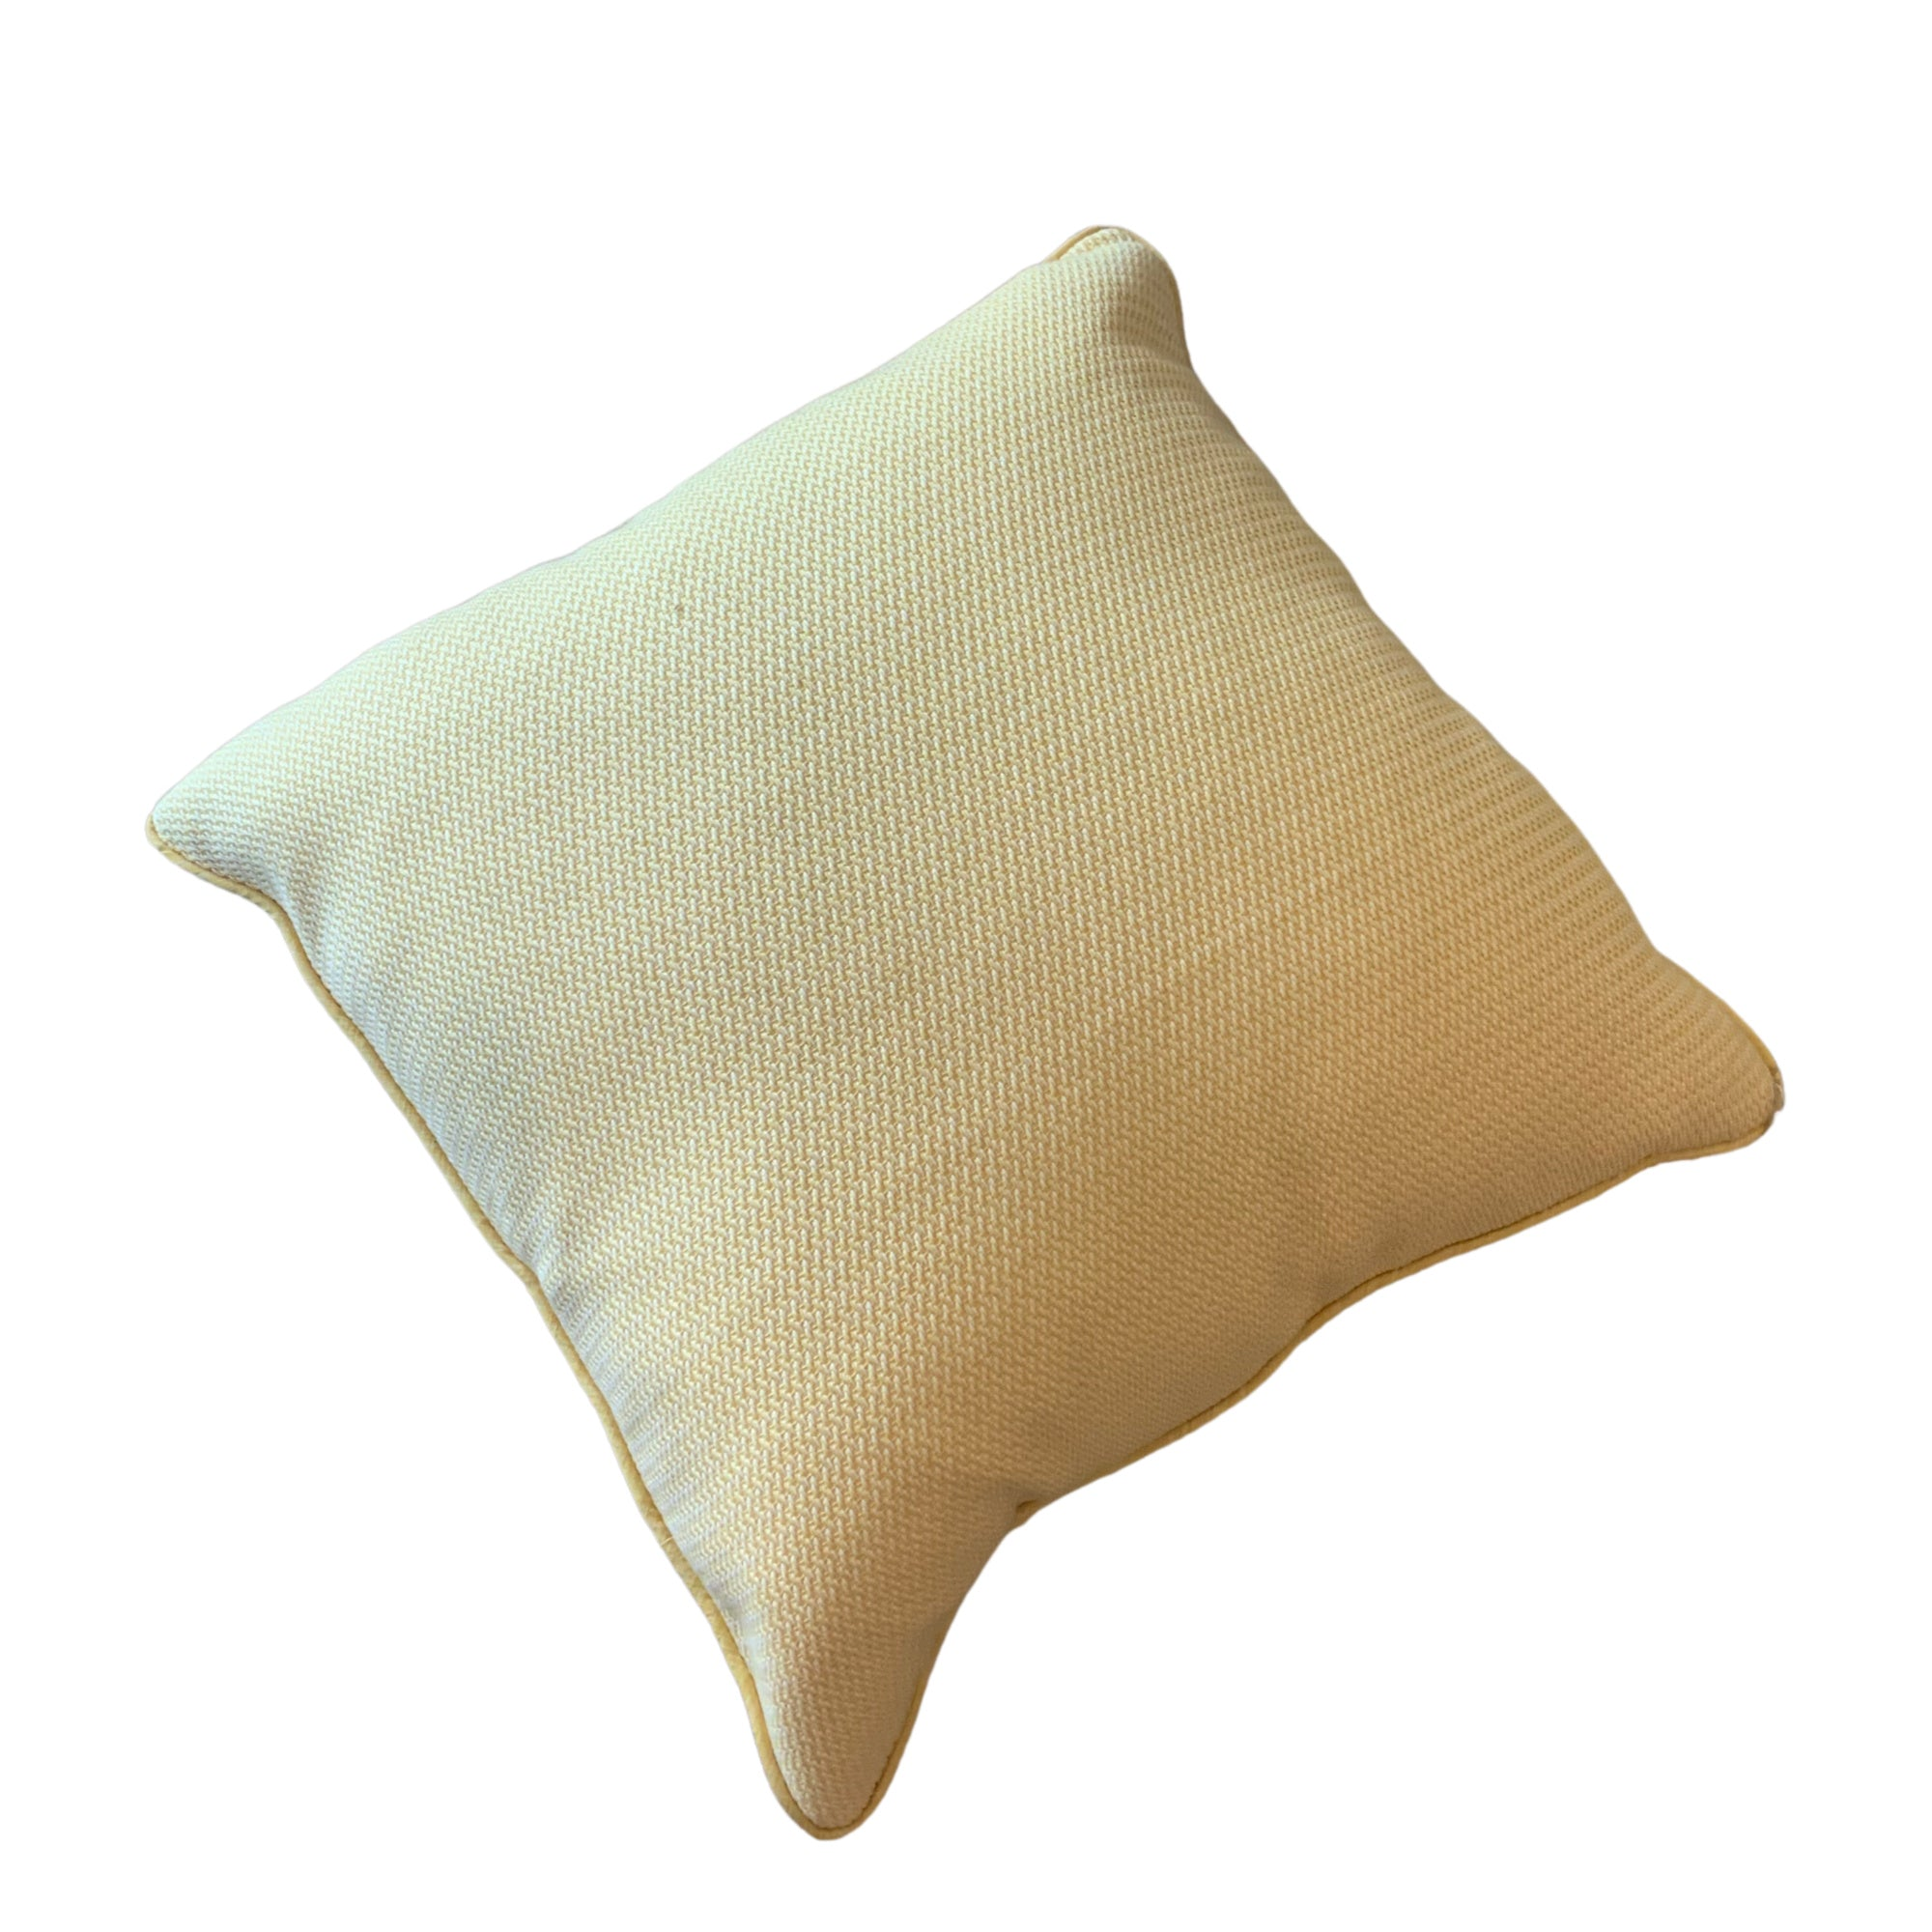 Yellow Woven Pillows